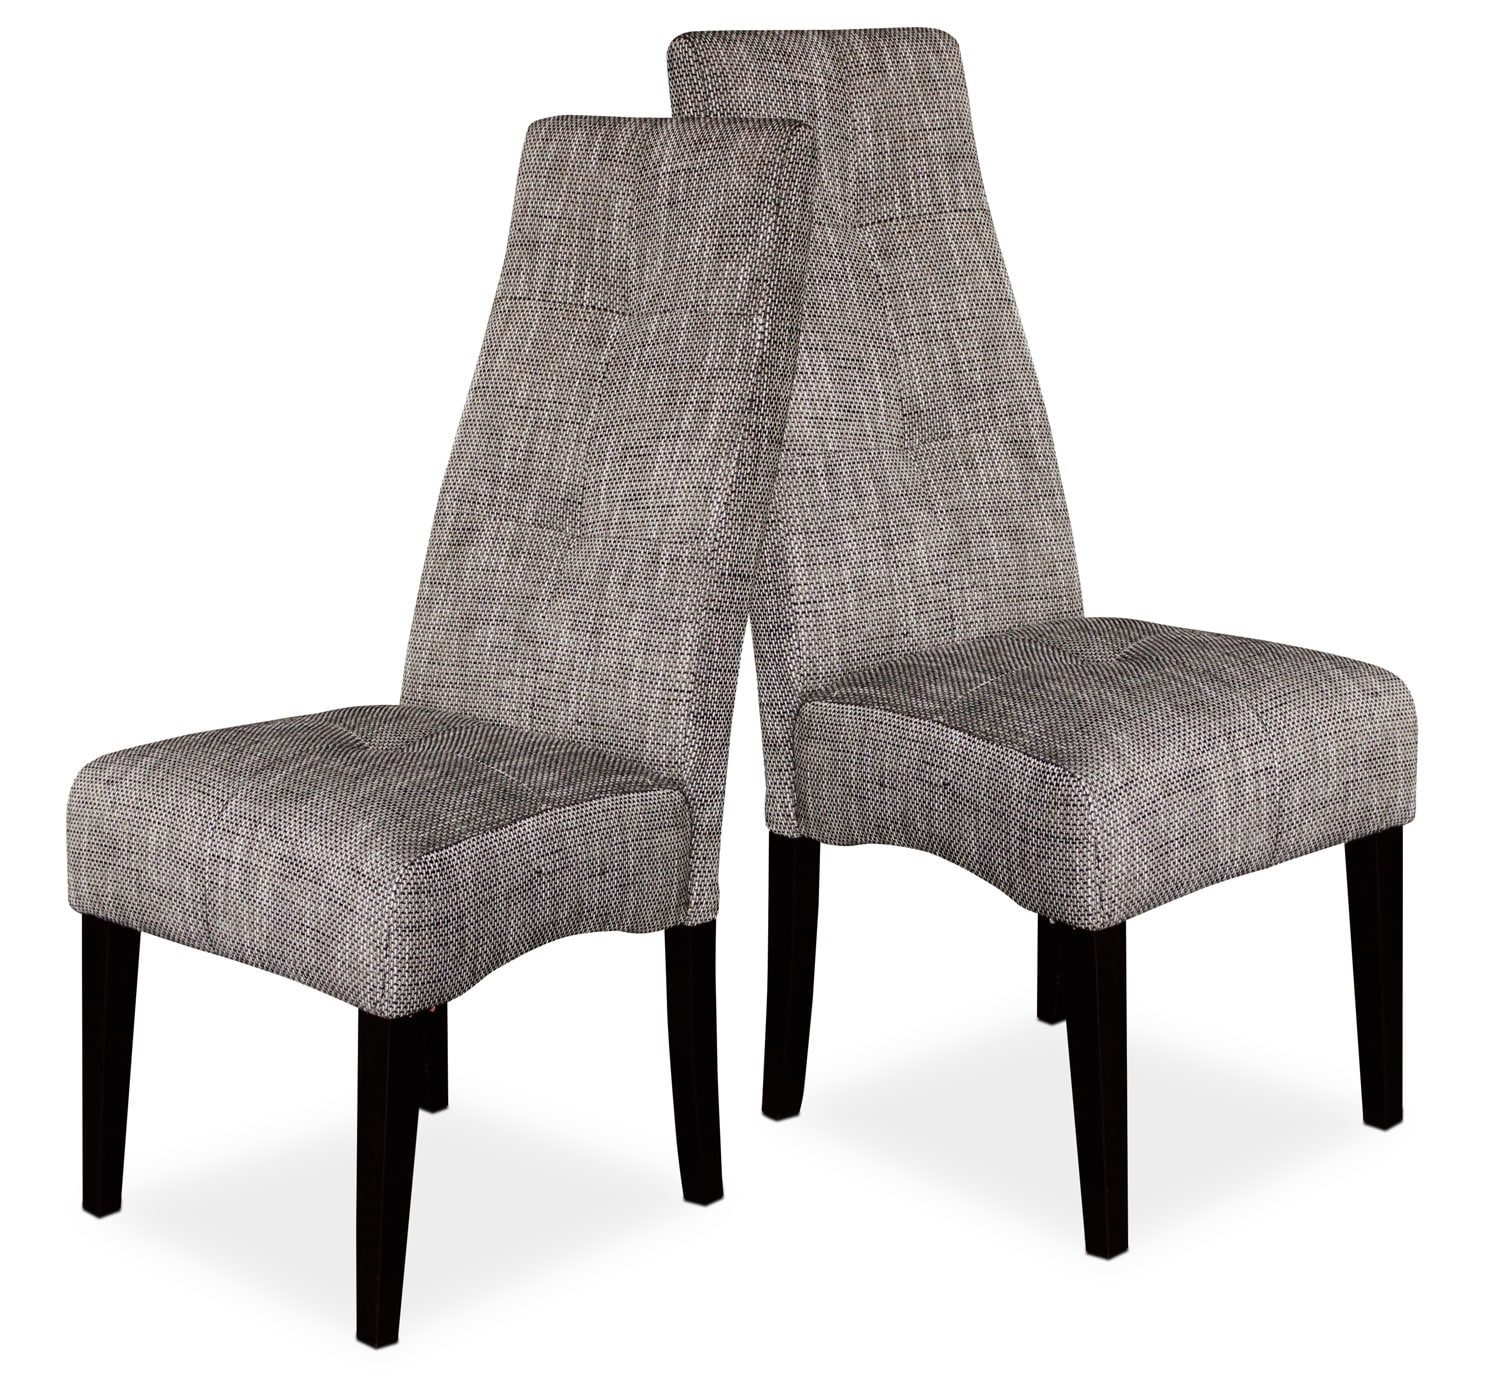 Grey Dining Chairs – Set of 2